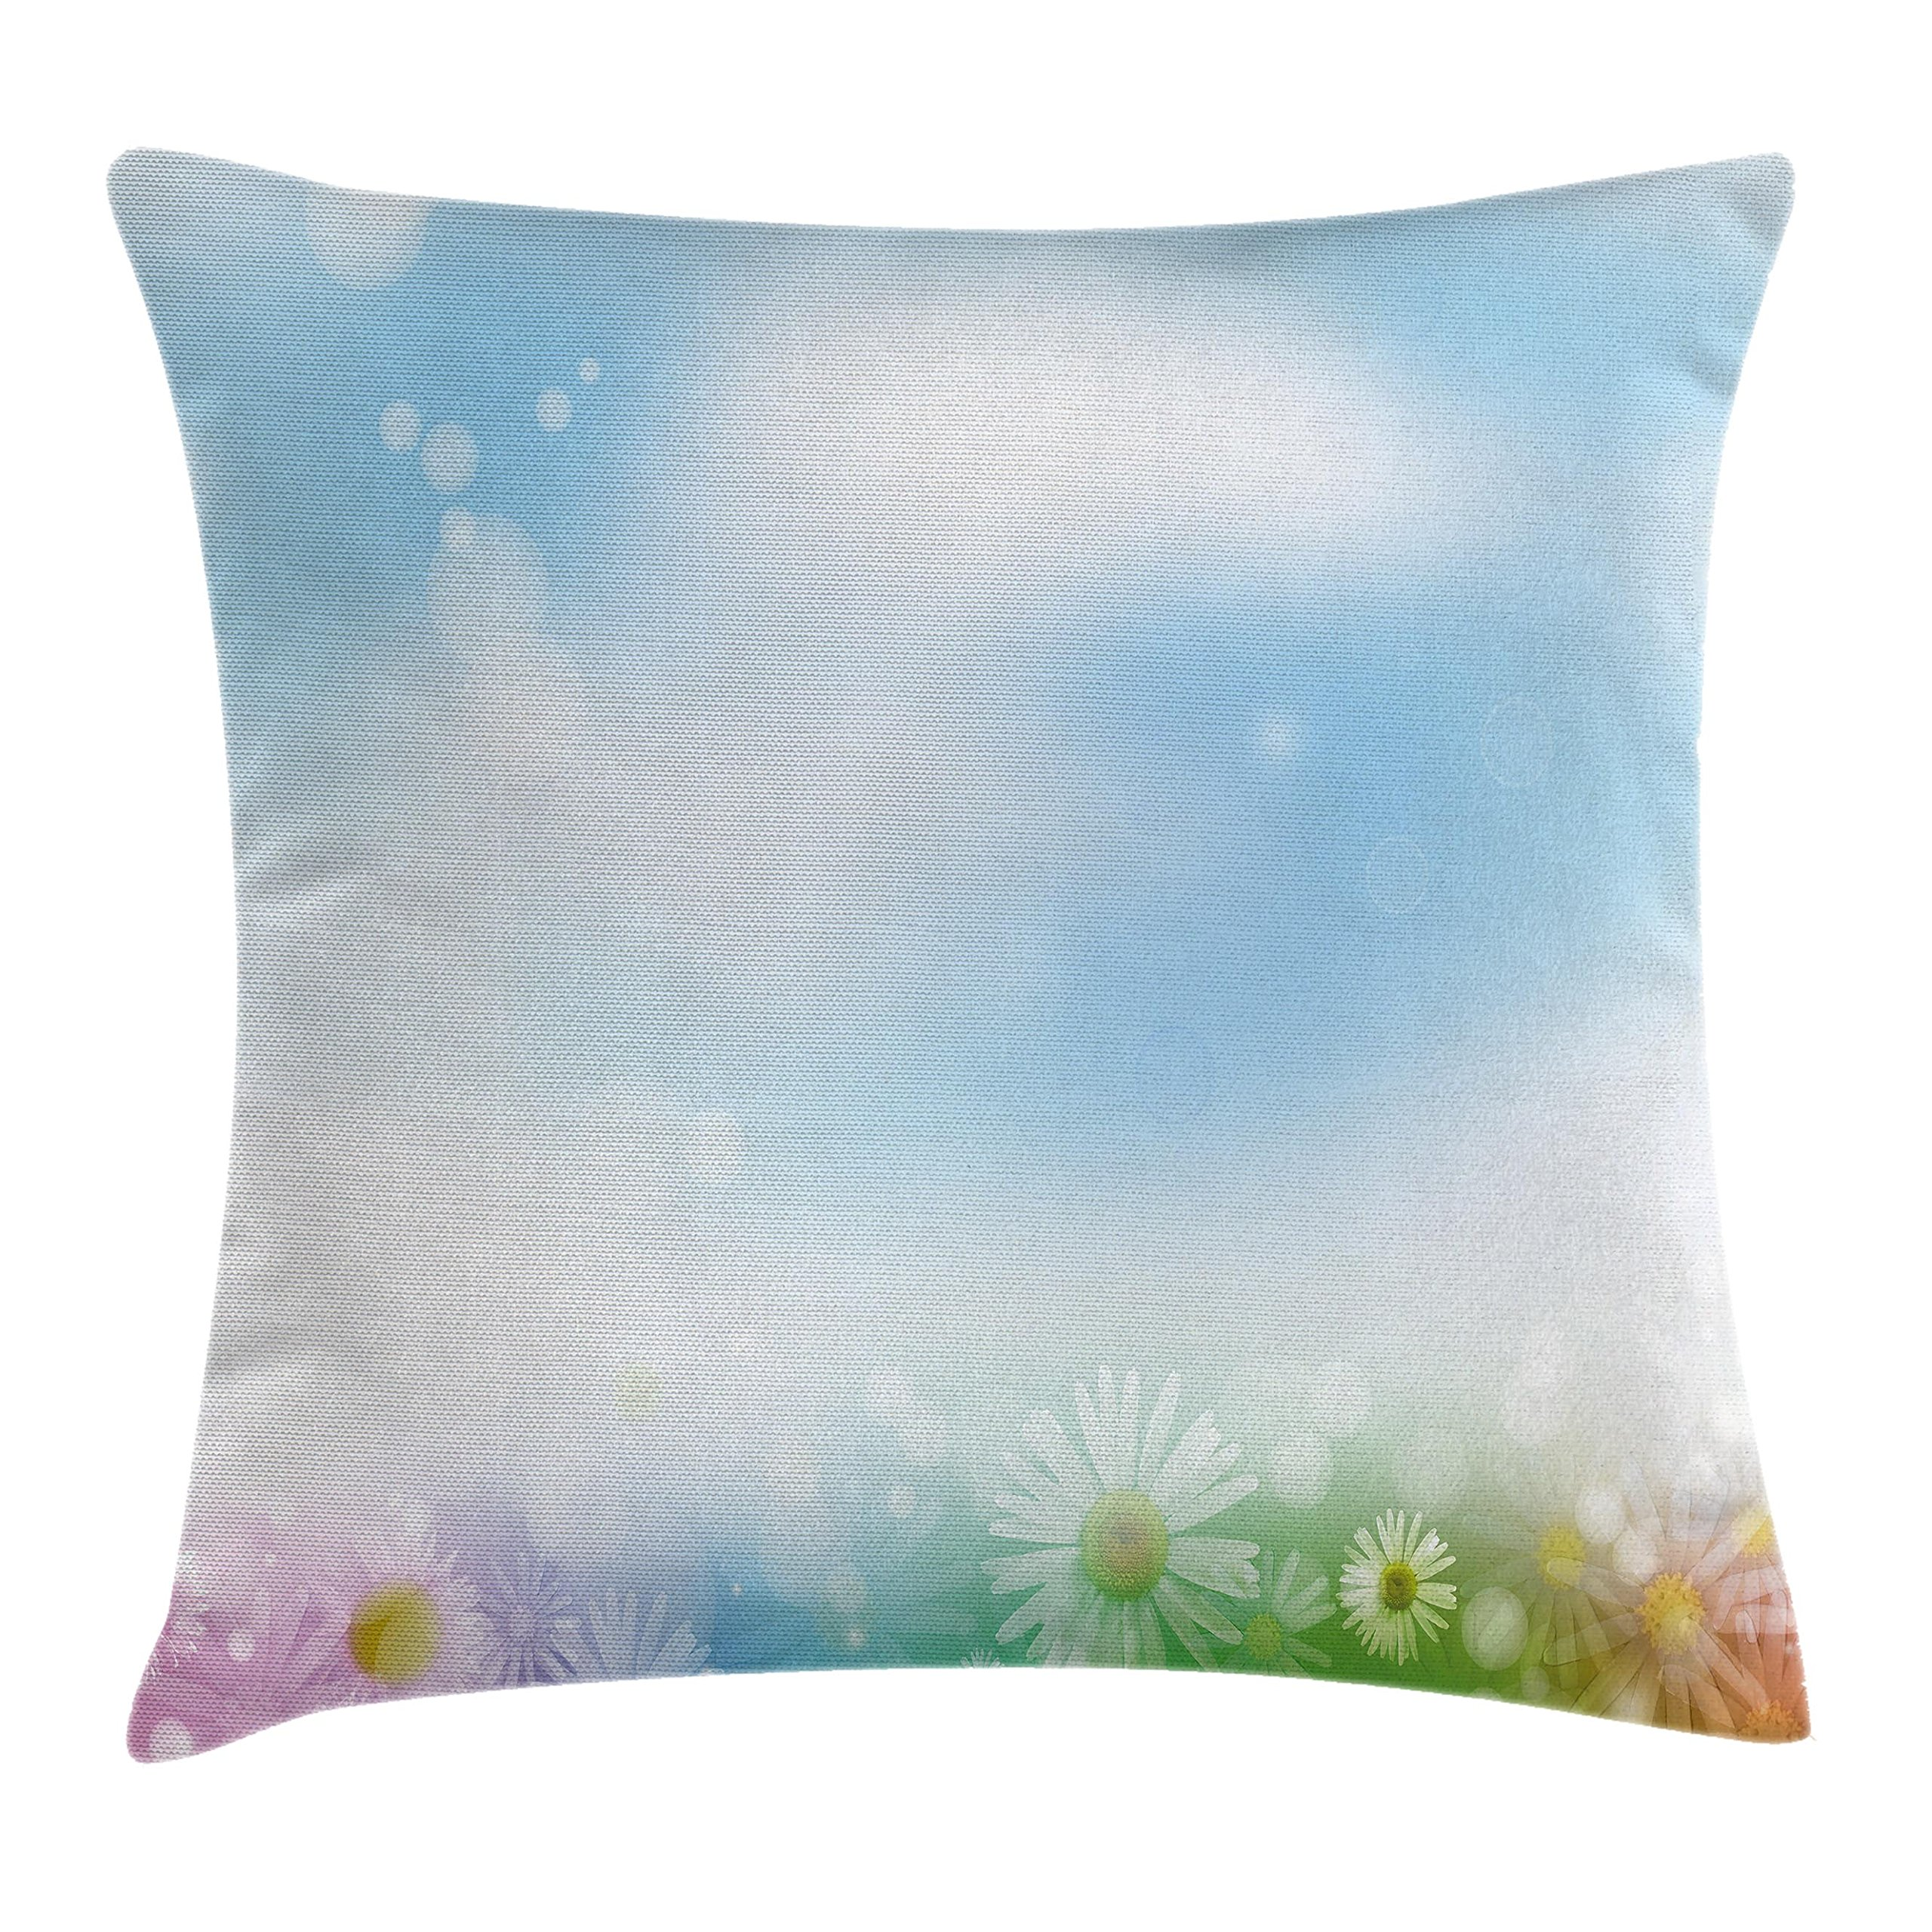 Modern Decor Throw Pillow Cushion Cover by Ambesonne, Abstract Image Flowers Daisies Leaves Bright Sunbeams Lights Artwork, Decorative Square Accent Pillow Case, 18 X18 Inches, Baby Blue Green Pink